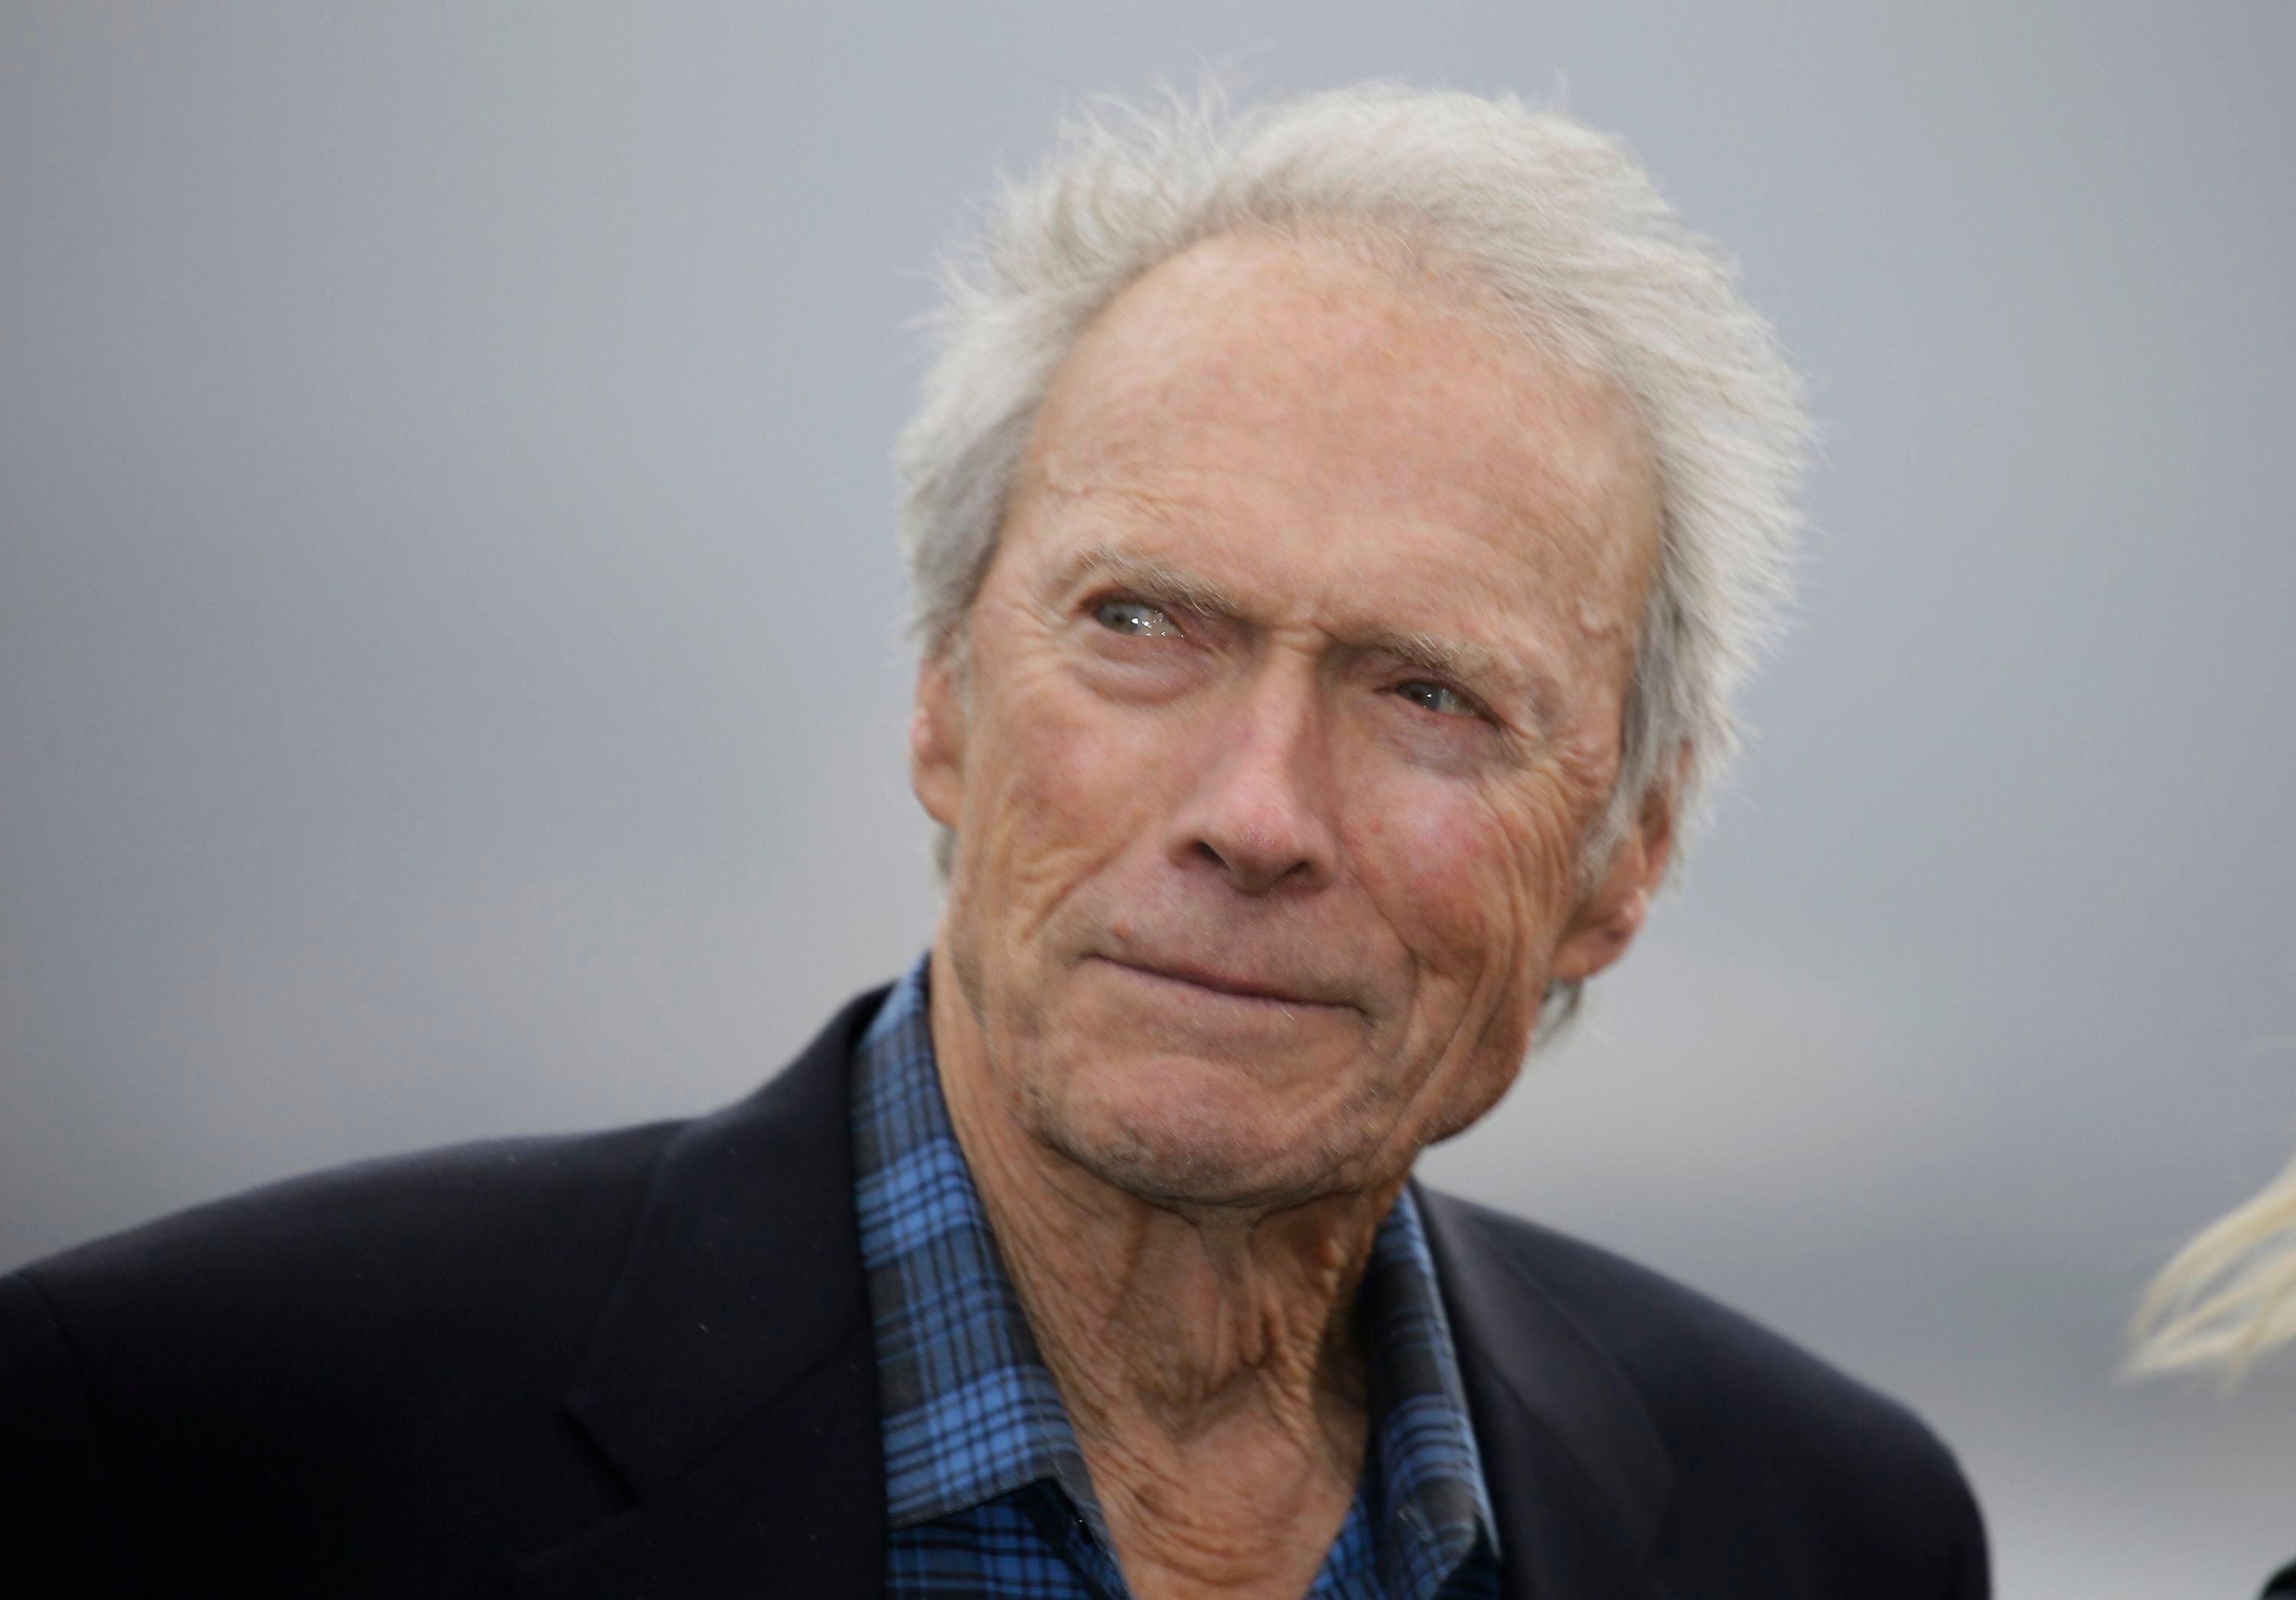 Clint Eastwood on the 18th green of the Pebble Beach Golf Links during the awards ceremony of the AT&T Pebble Beach National Pro-Am golf tournament, in Pebble Beach, CalifGolf, Pebble Beach, USA - 11 Feb 2018